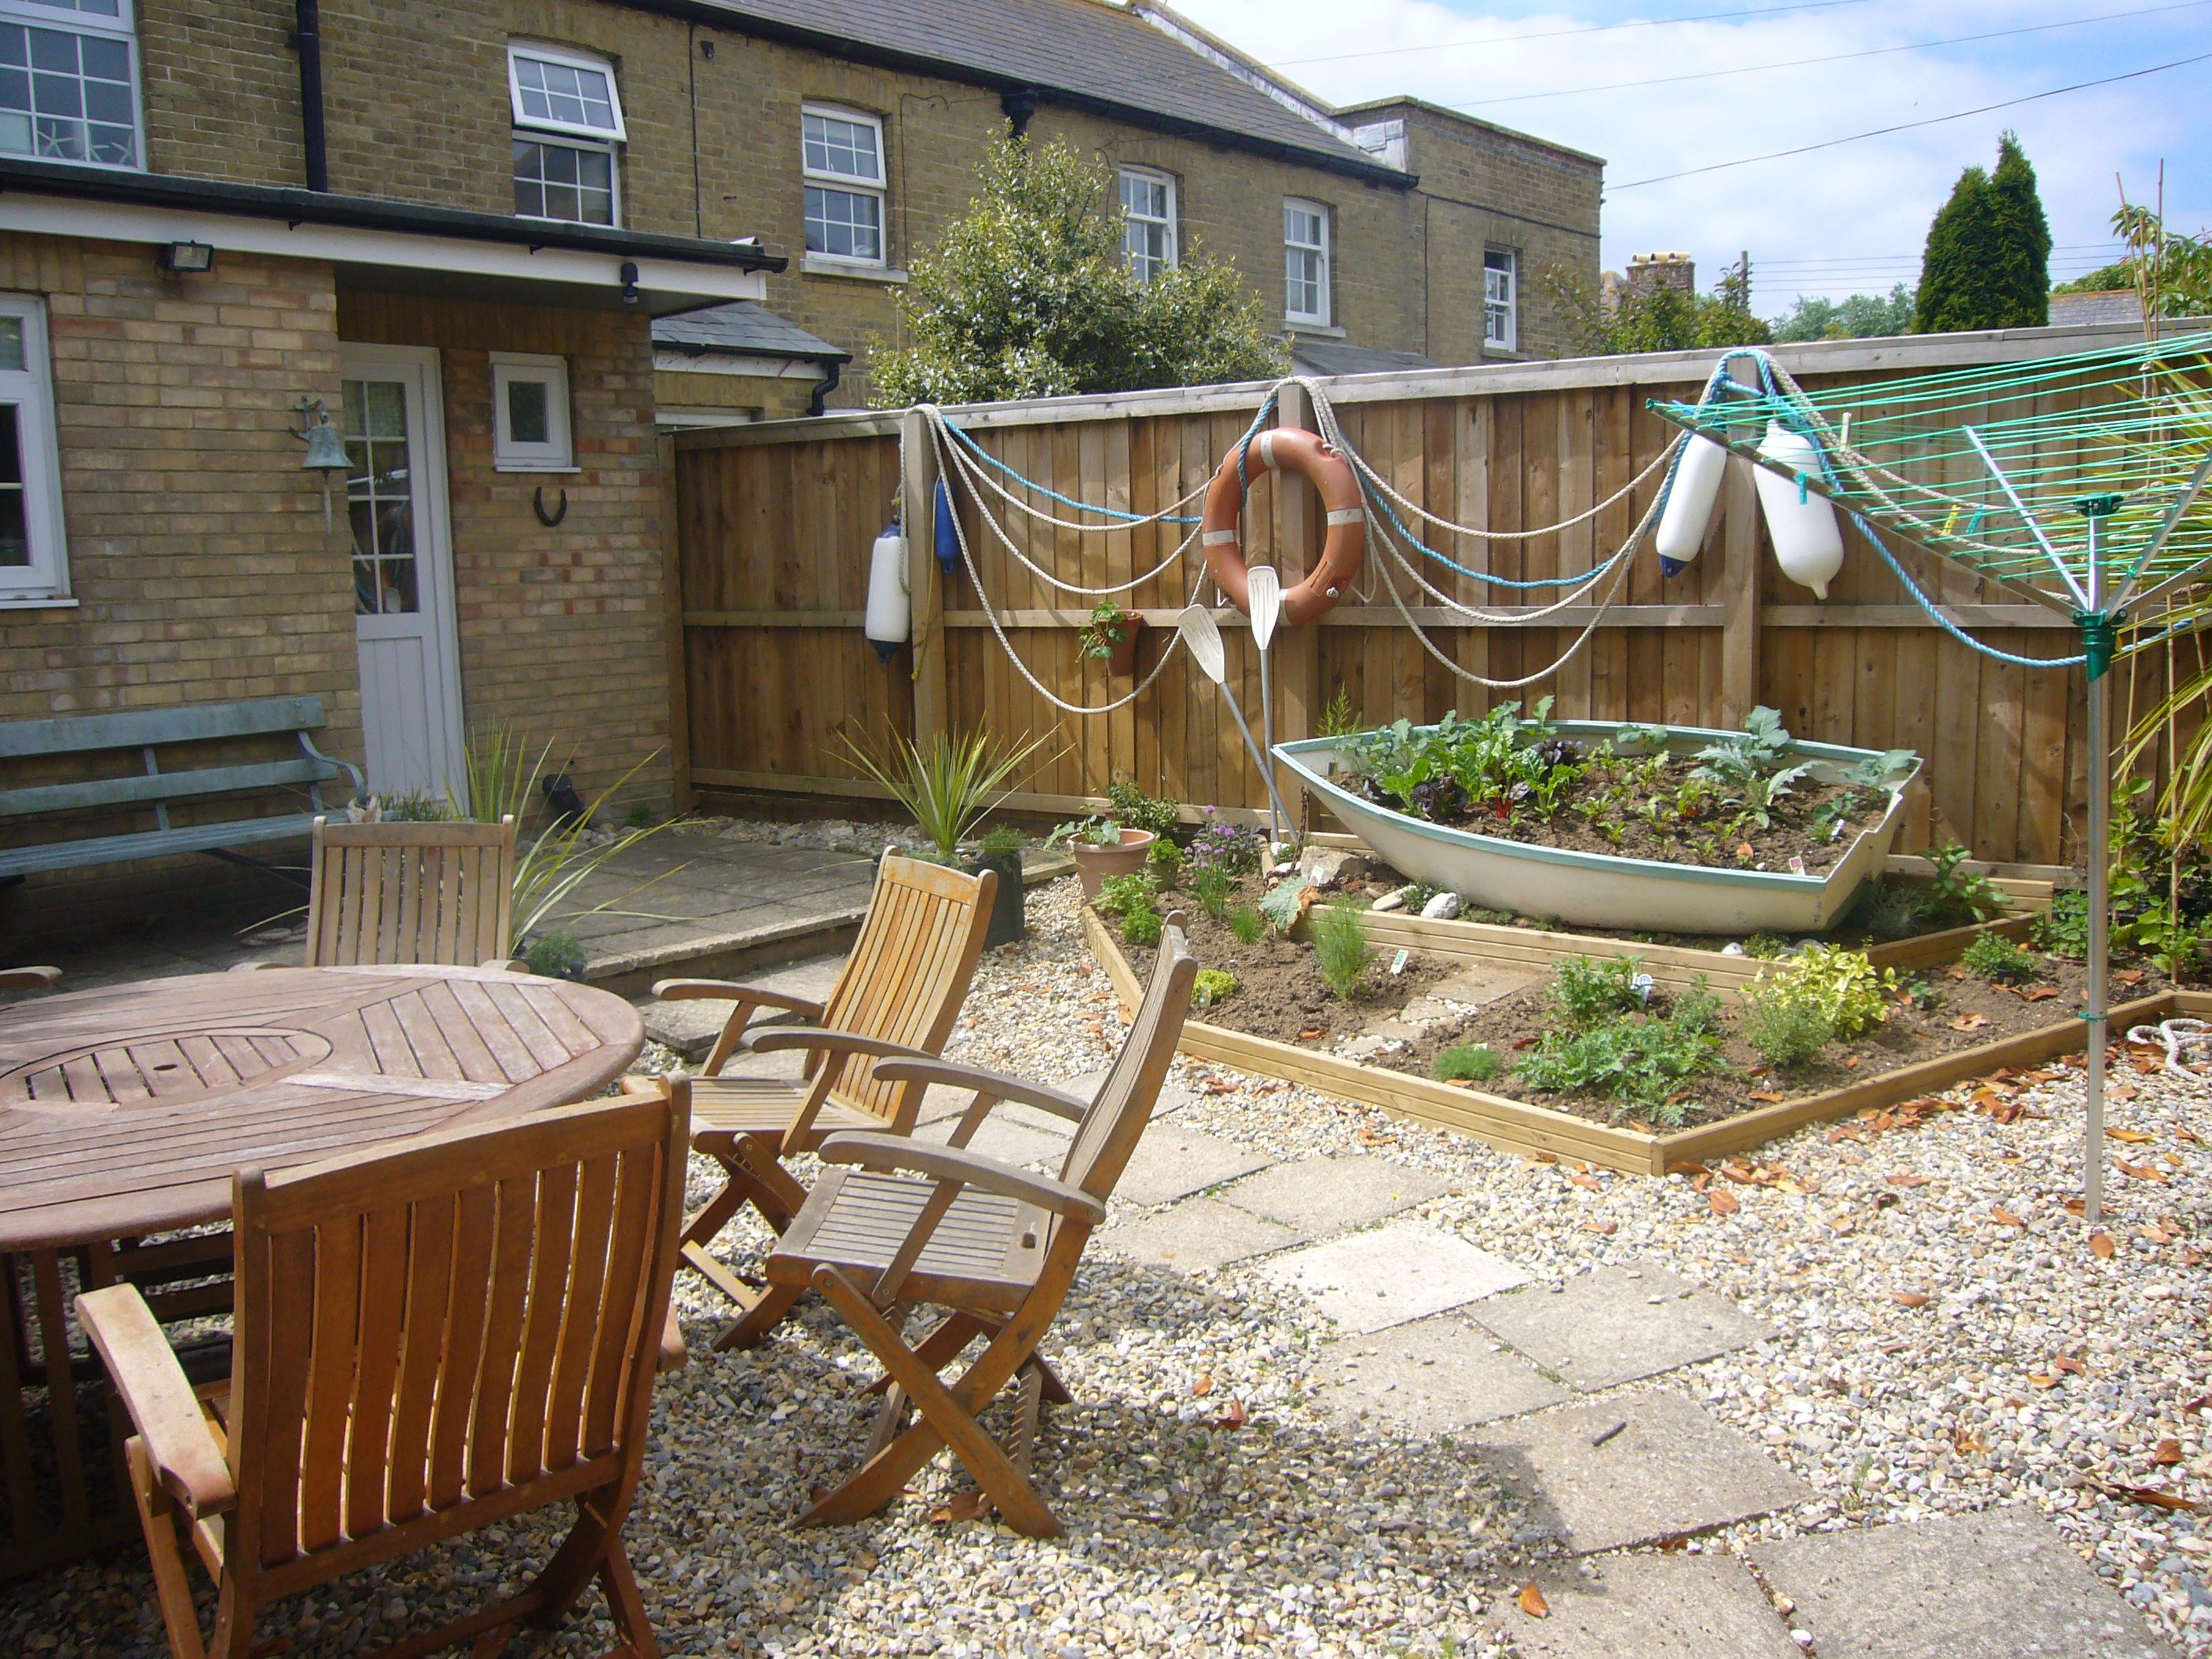 Garden Design Ideas Seaside : Seaside garden using reclaimed and painted boat as a herb